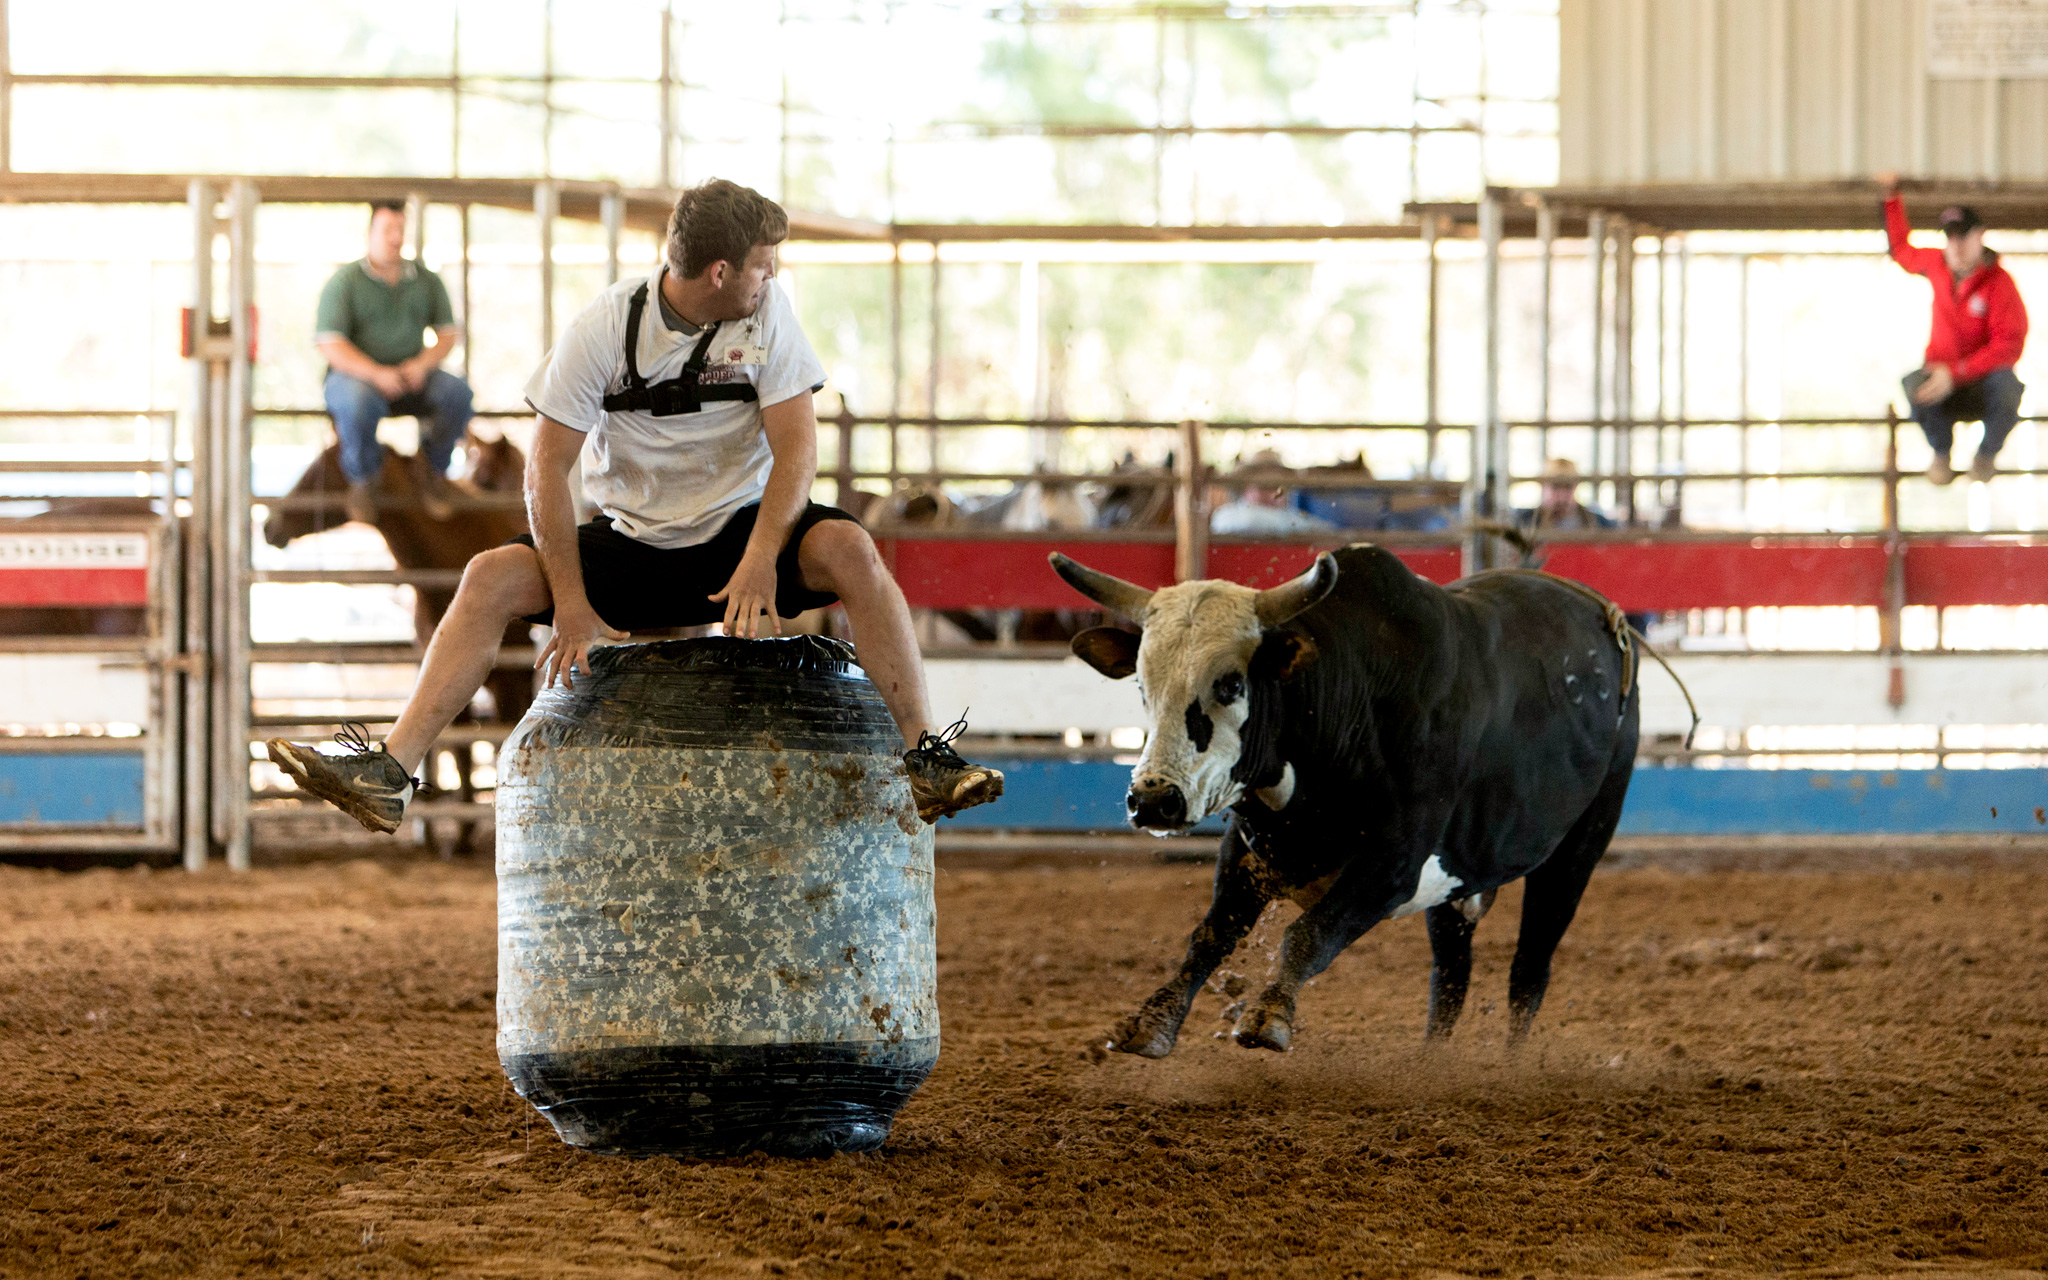 Bull Fighter Training at Sankey Rodeo School